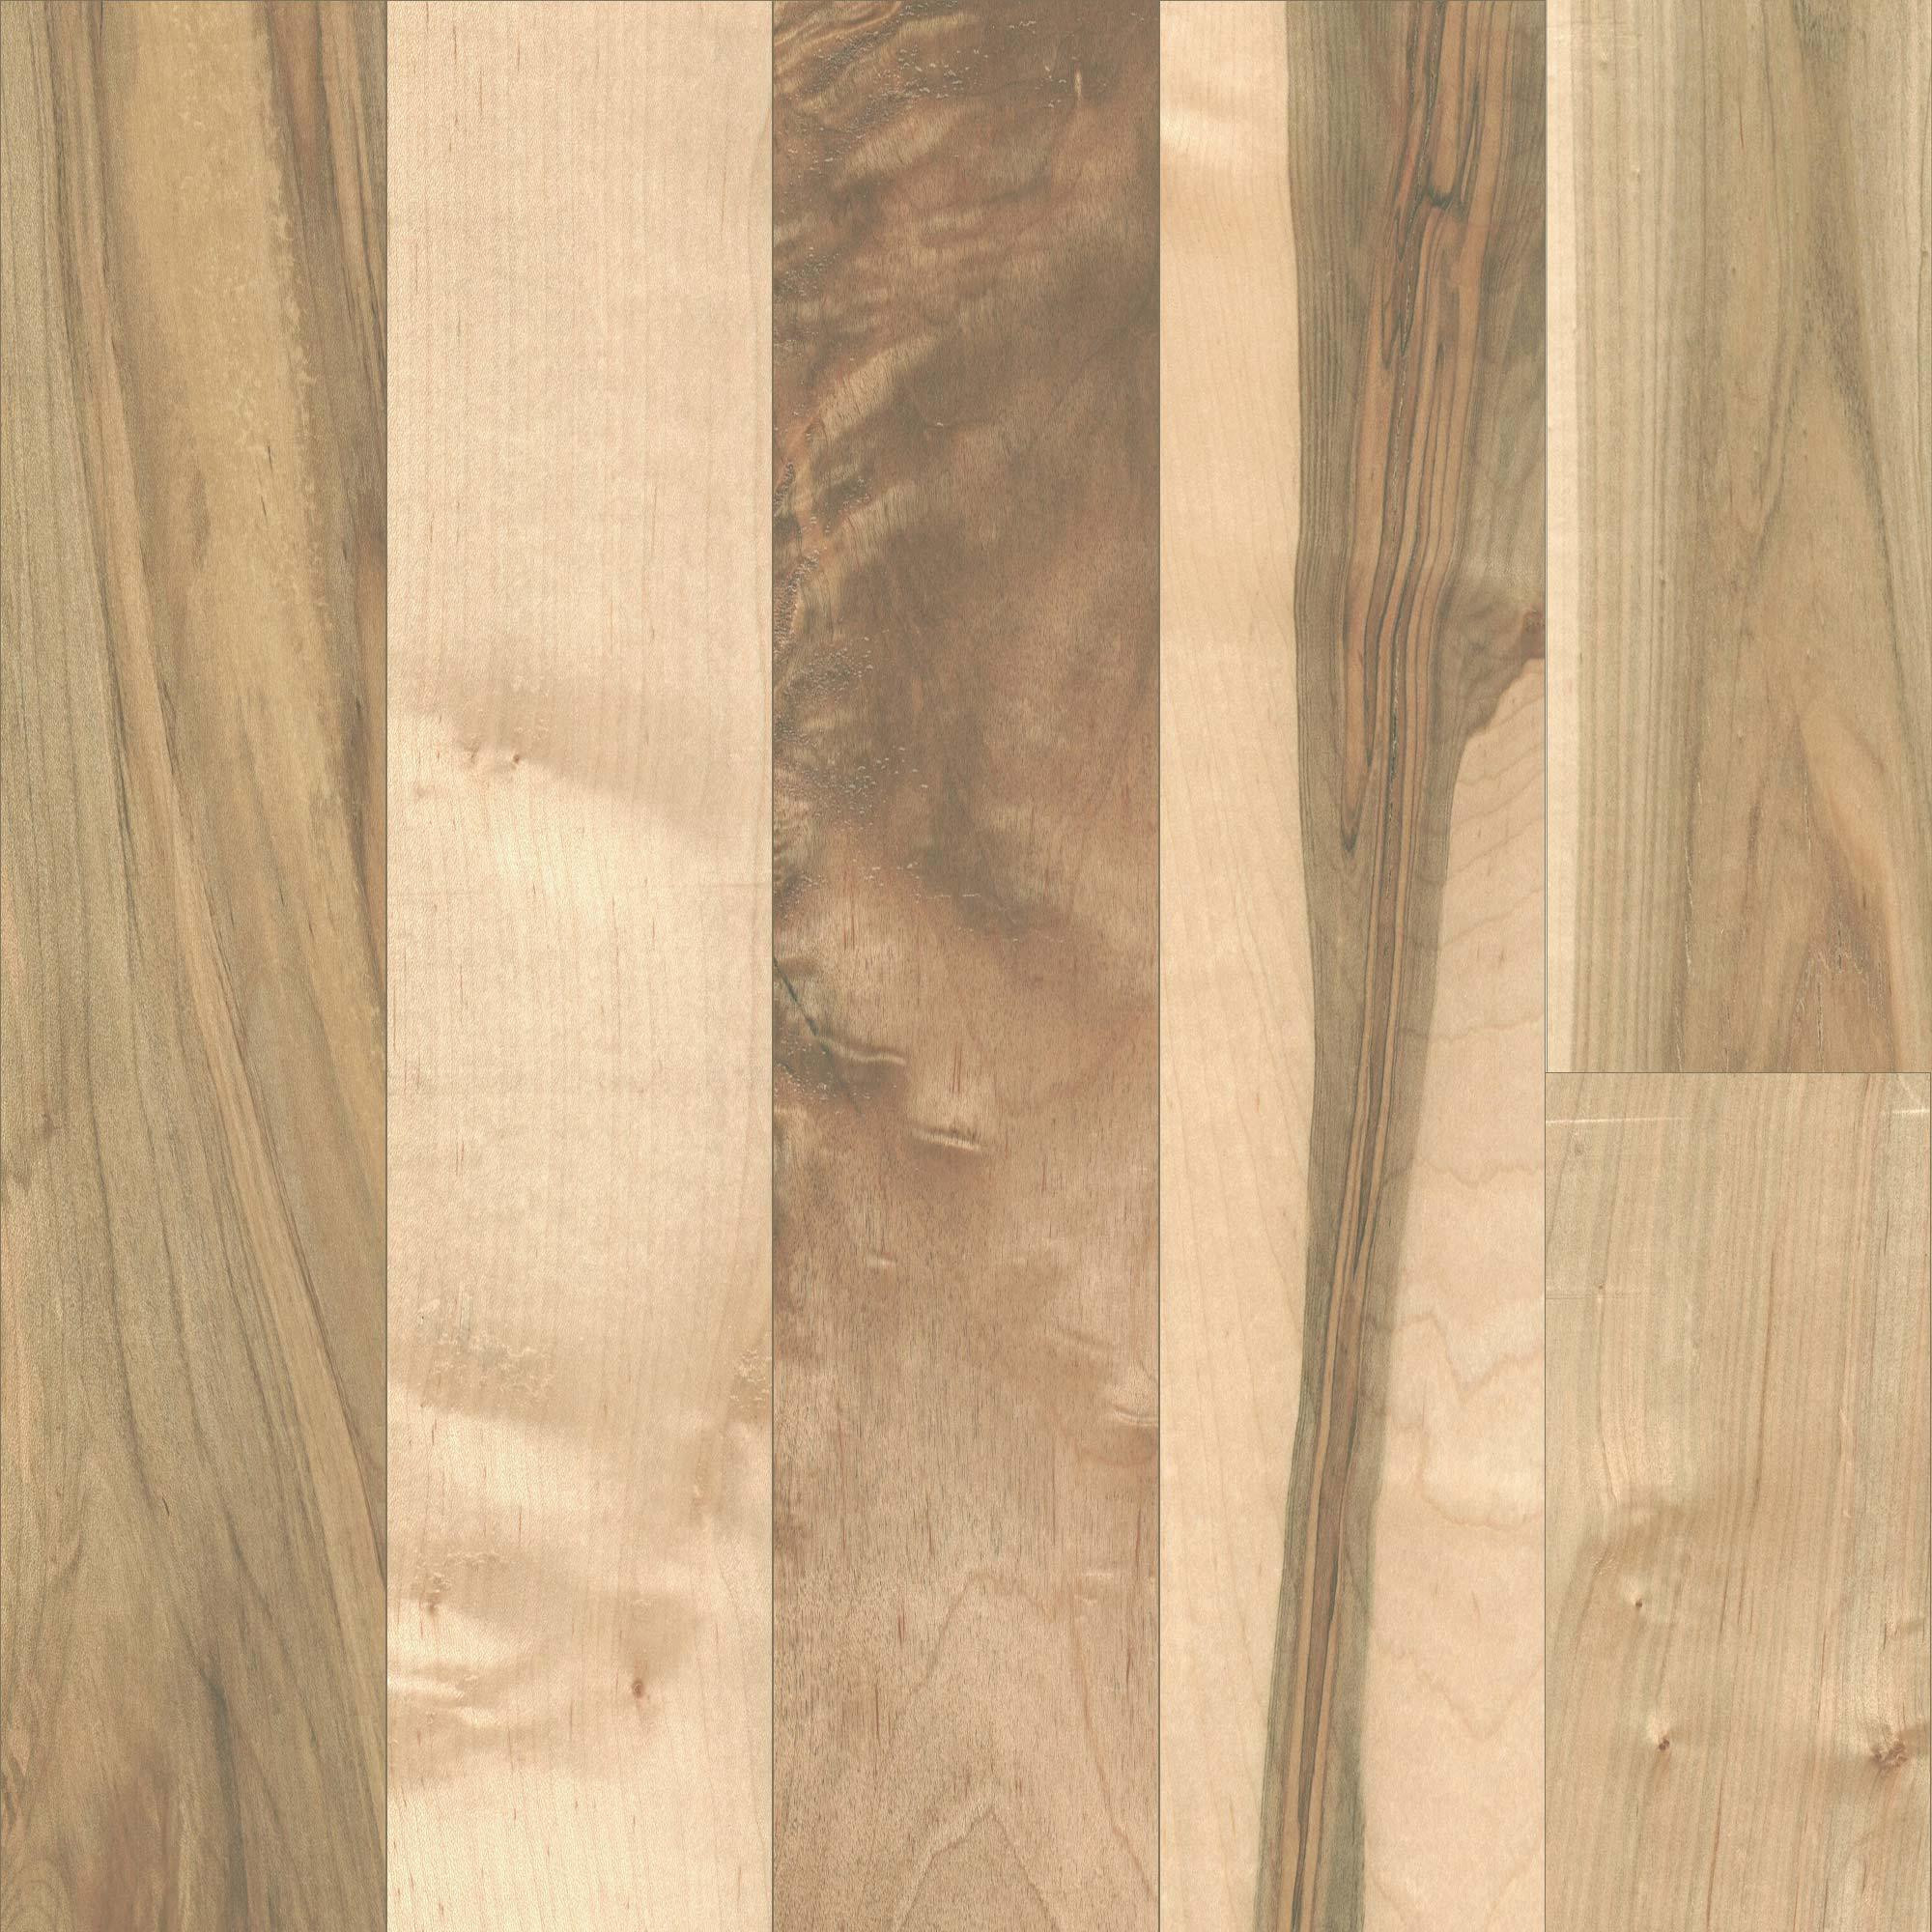 maple hardwood flooring cost of kingsmill natural maple 4 wide 3 4 solid hardwood flooring regarding natural maple m unat4 4 x 36 approved